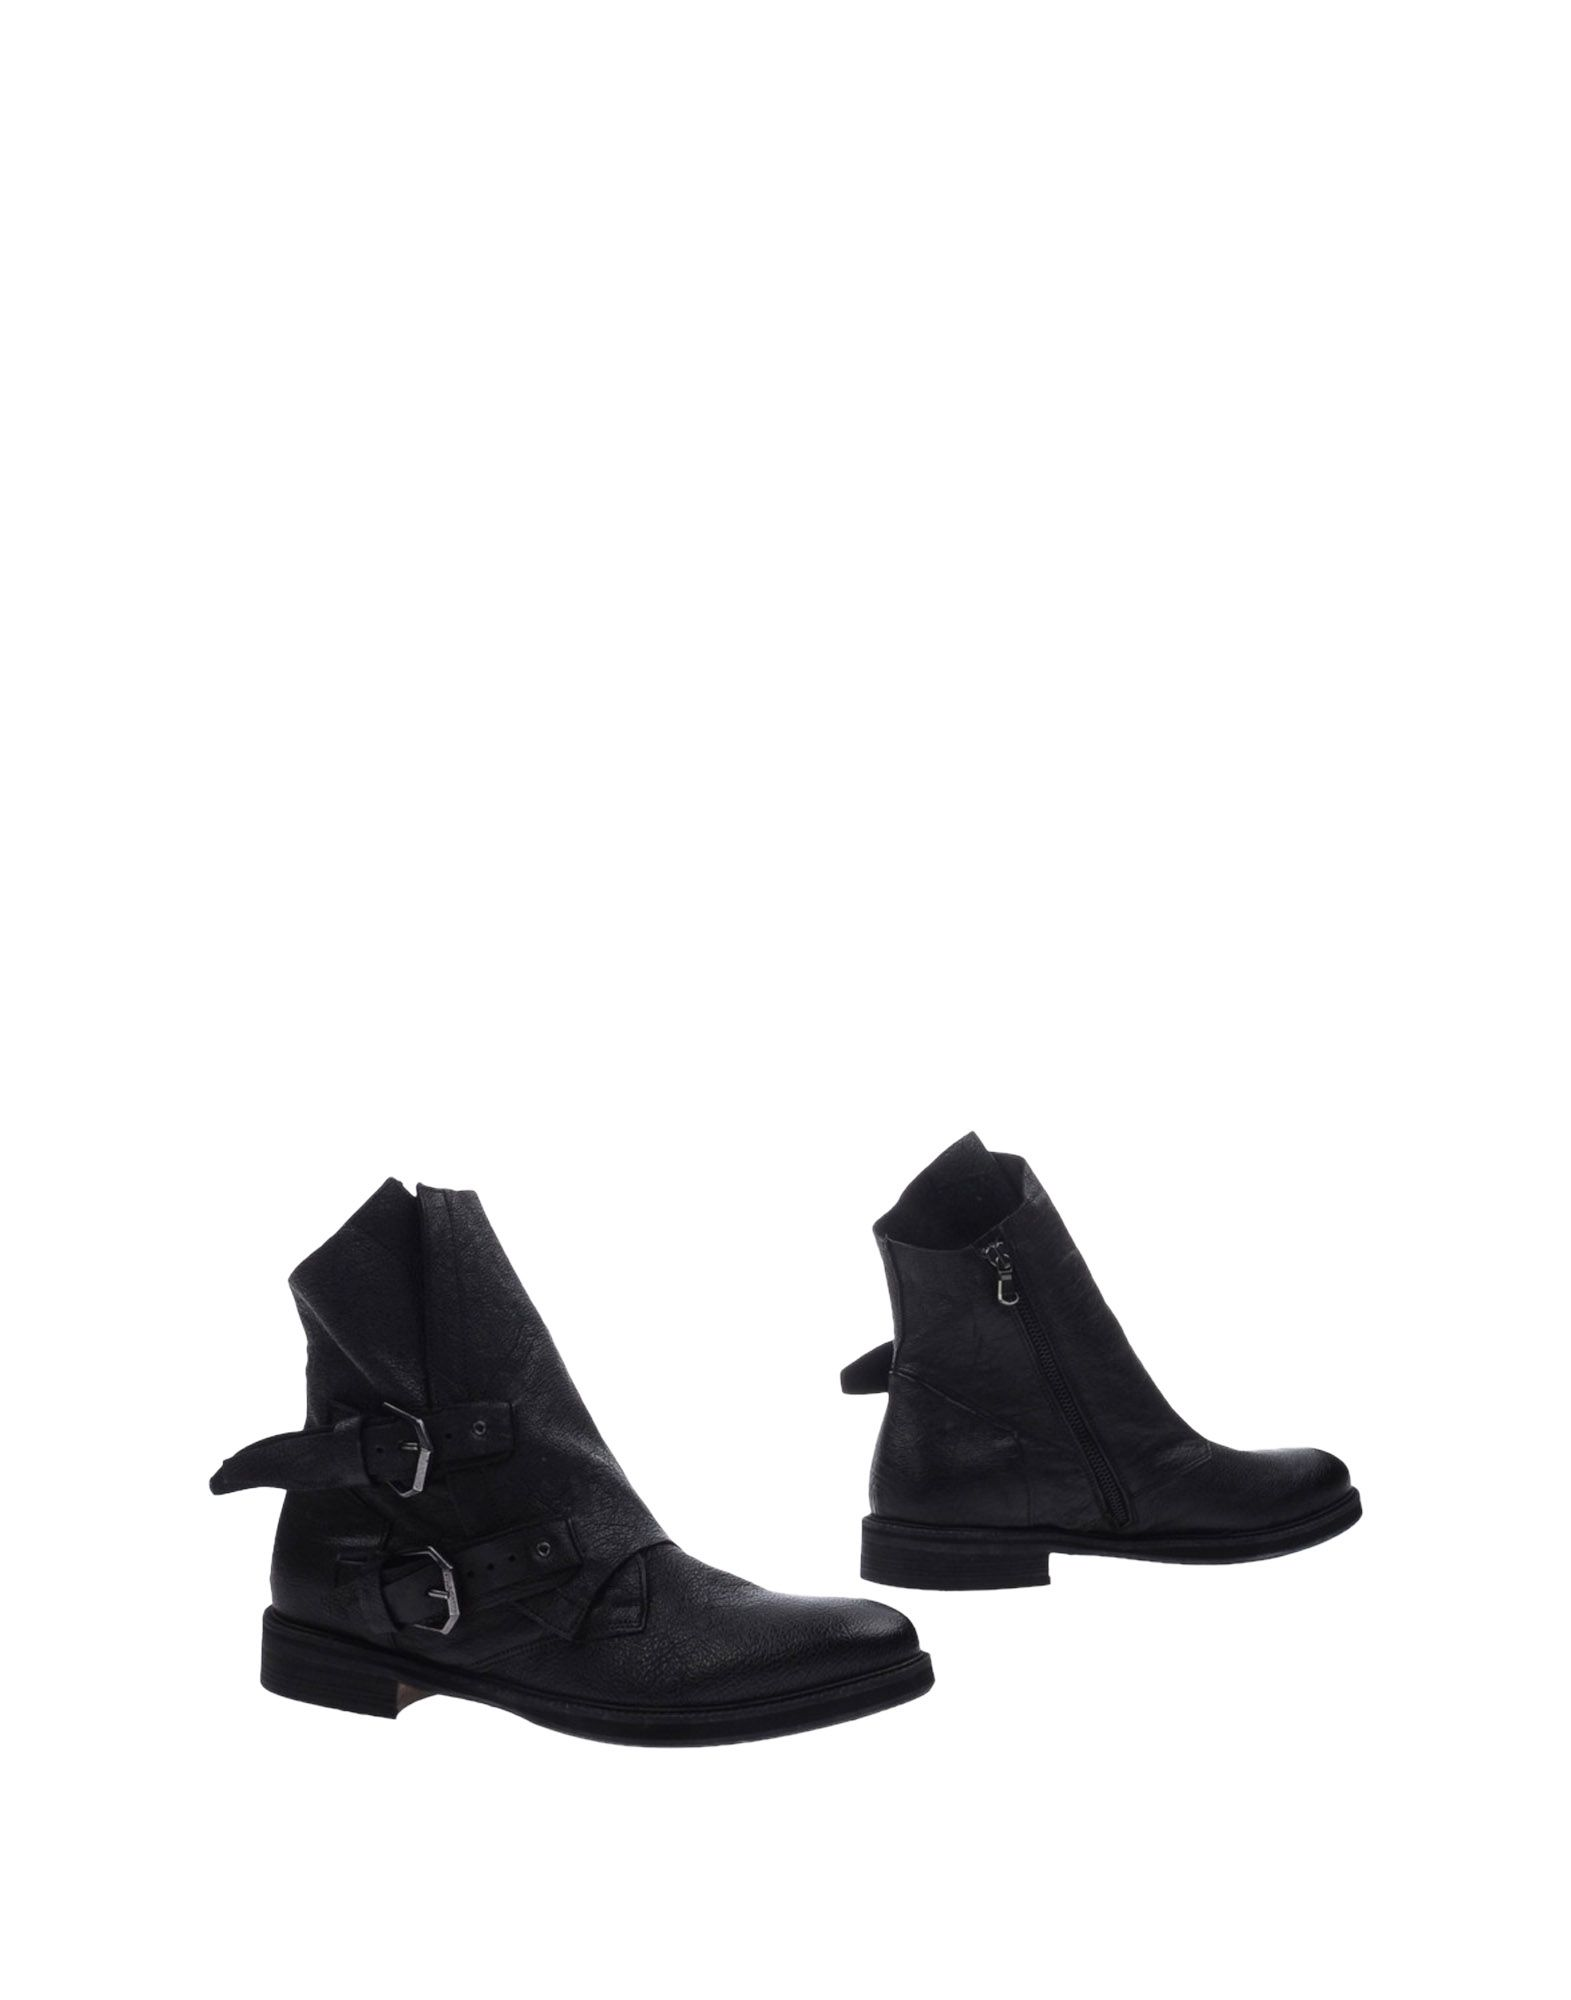 Geneve Ankle Boot Boots - Women Geneve Ankle Boots Boot online on  Australia - 11308527IO 9a77d1